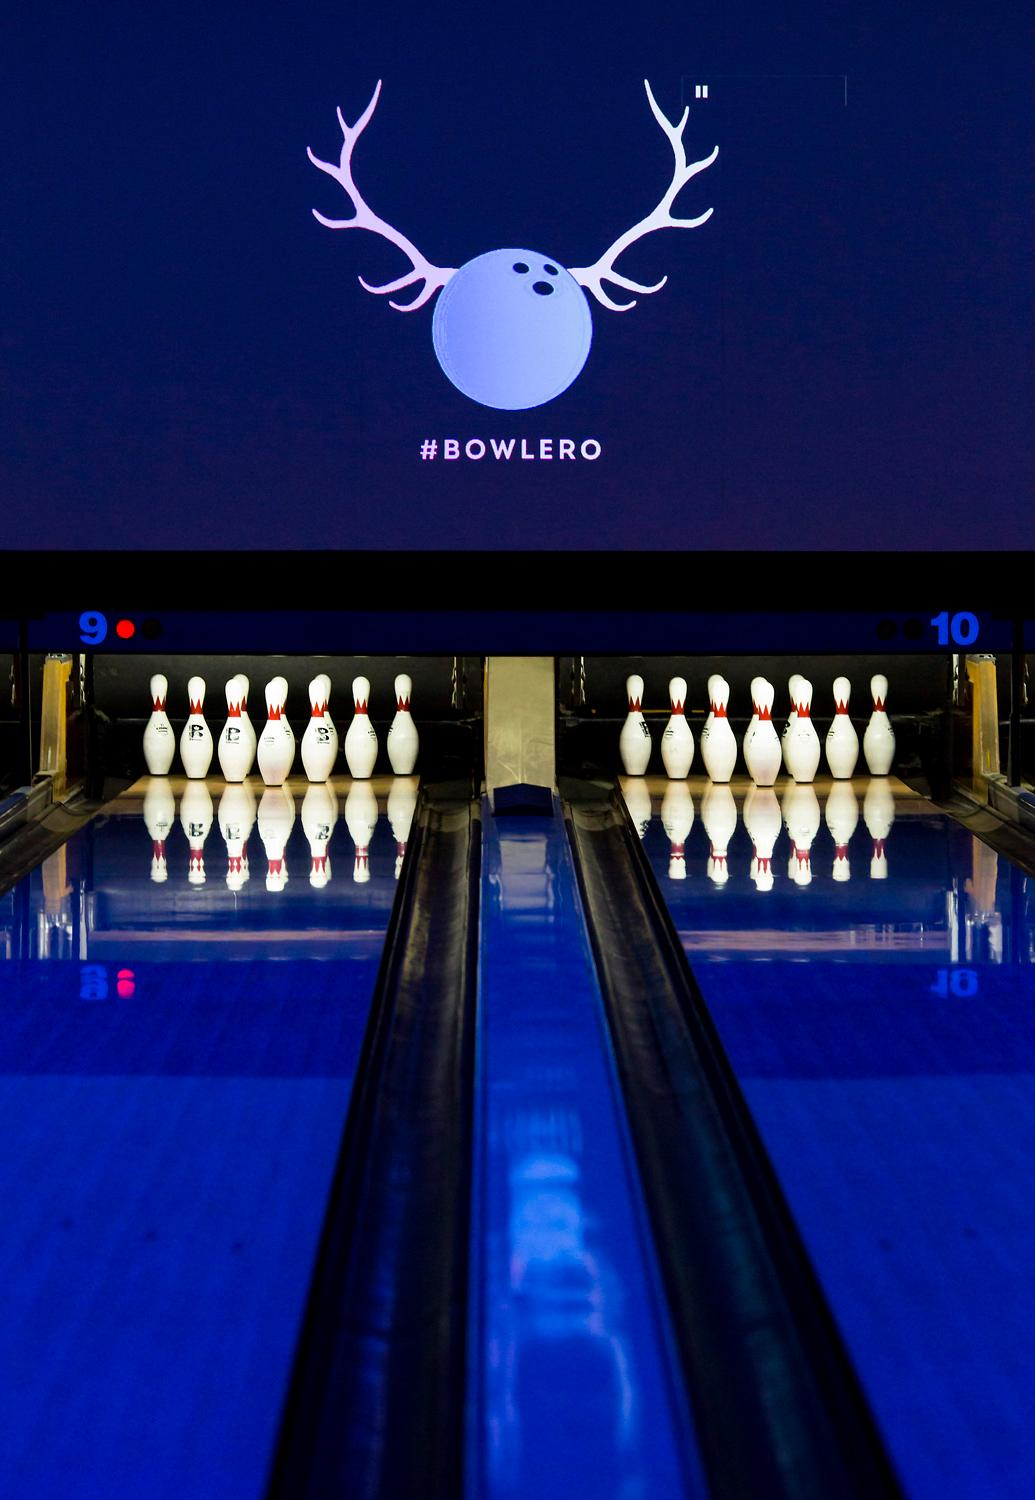 The first Bowlero entertainment center has opened up with their grand opening party over the weekend with a grand opening event which included free bowling, arcade play and delicious food from Bowlero's brand new BOWLED menu, like the Supreme French Fry Sampler, the colossal Party Pretzel, and a 2-foot long hot dog, also known as the Chi Town Mega Dog. The new spot is located at 1222 164th St SW. (Sy Bean / Seattle Refined)